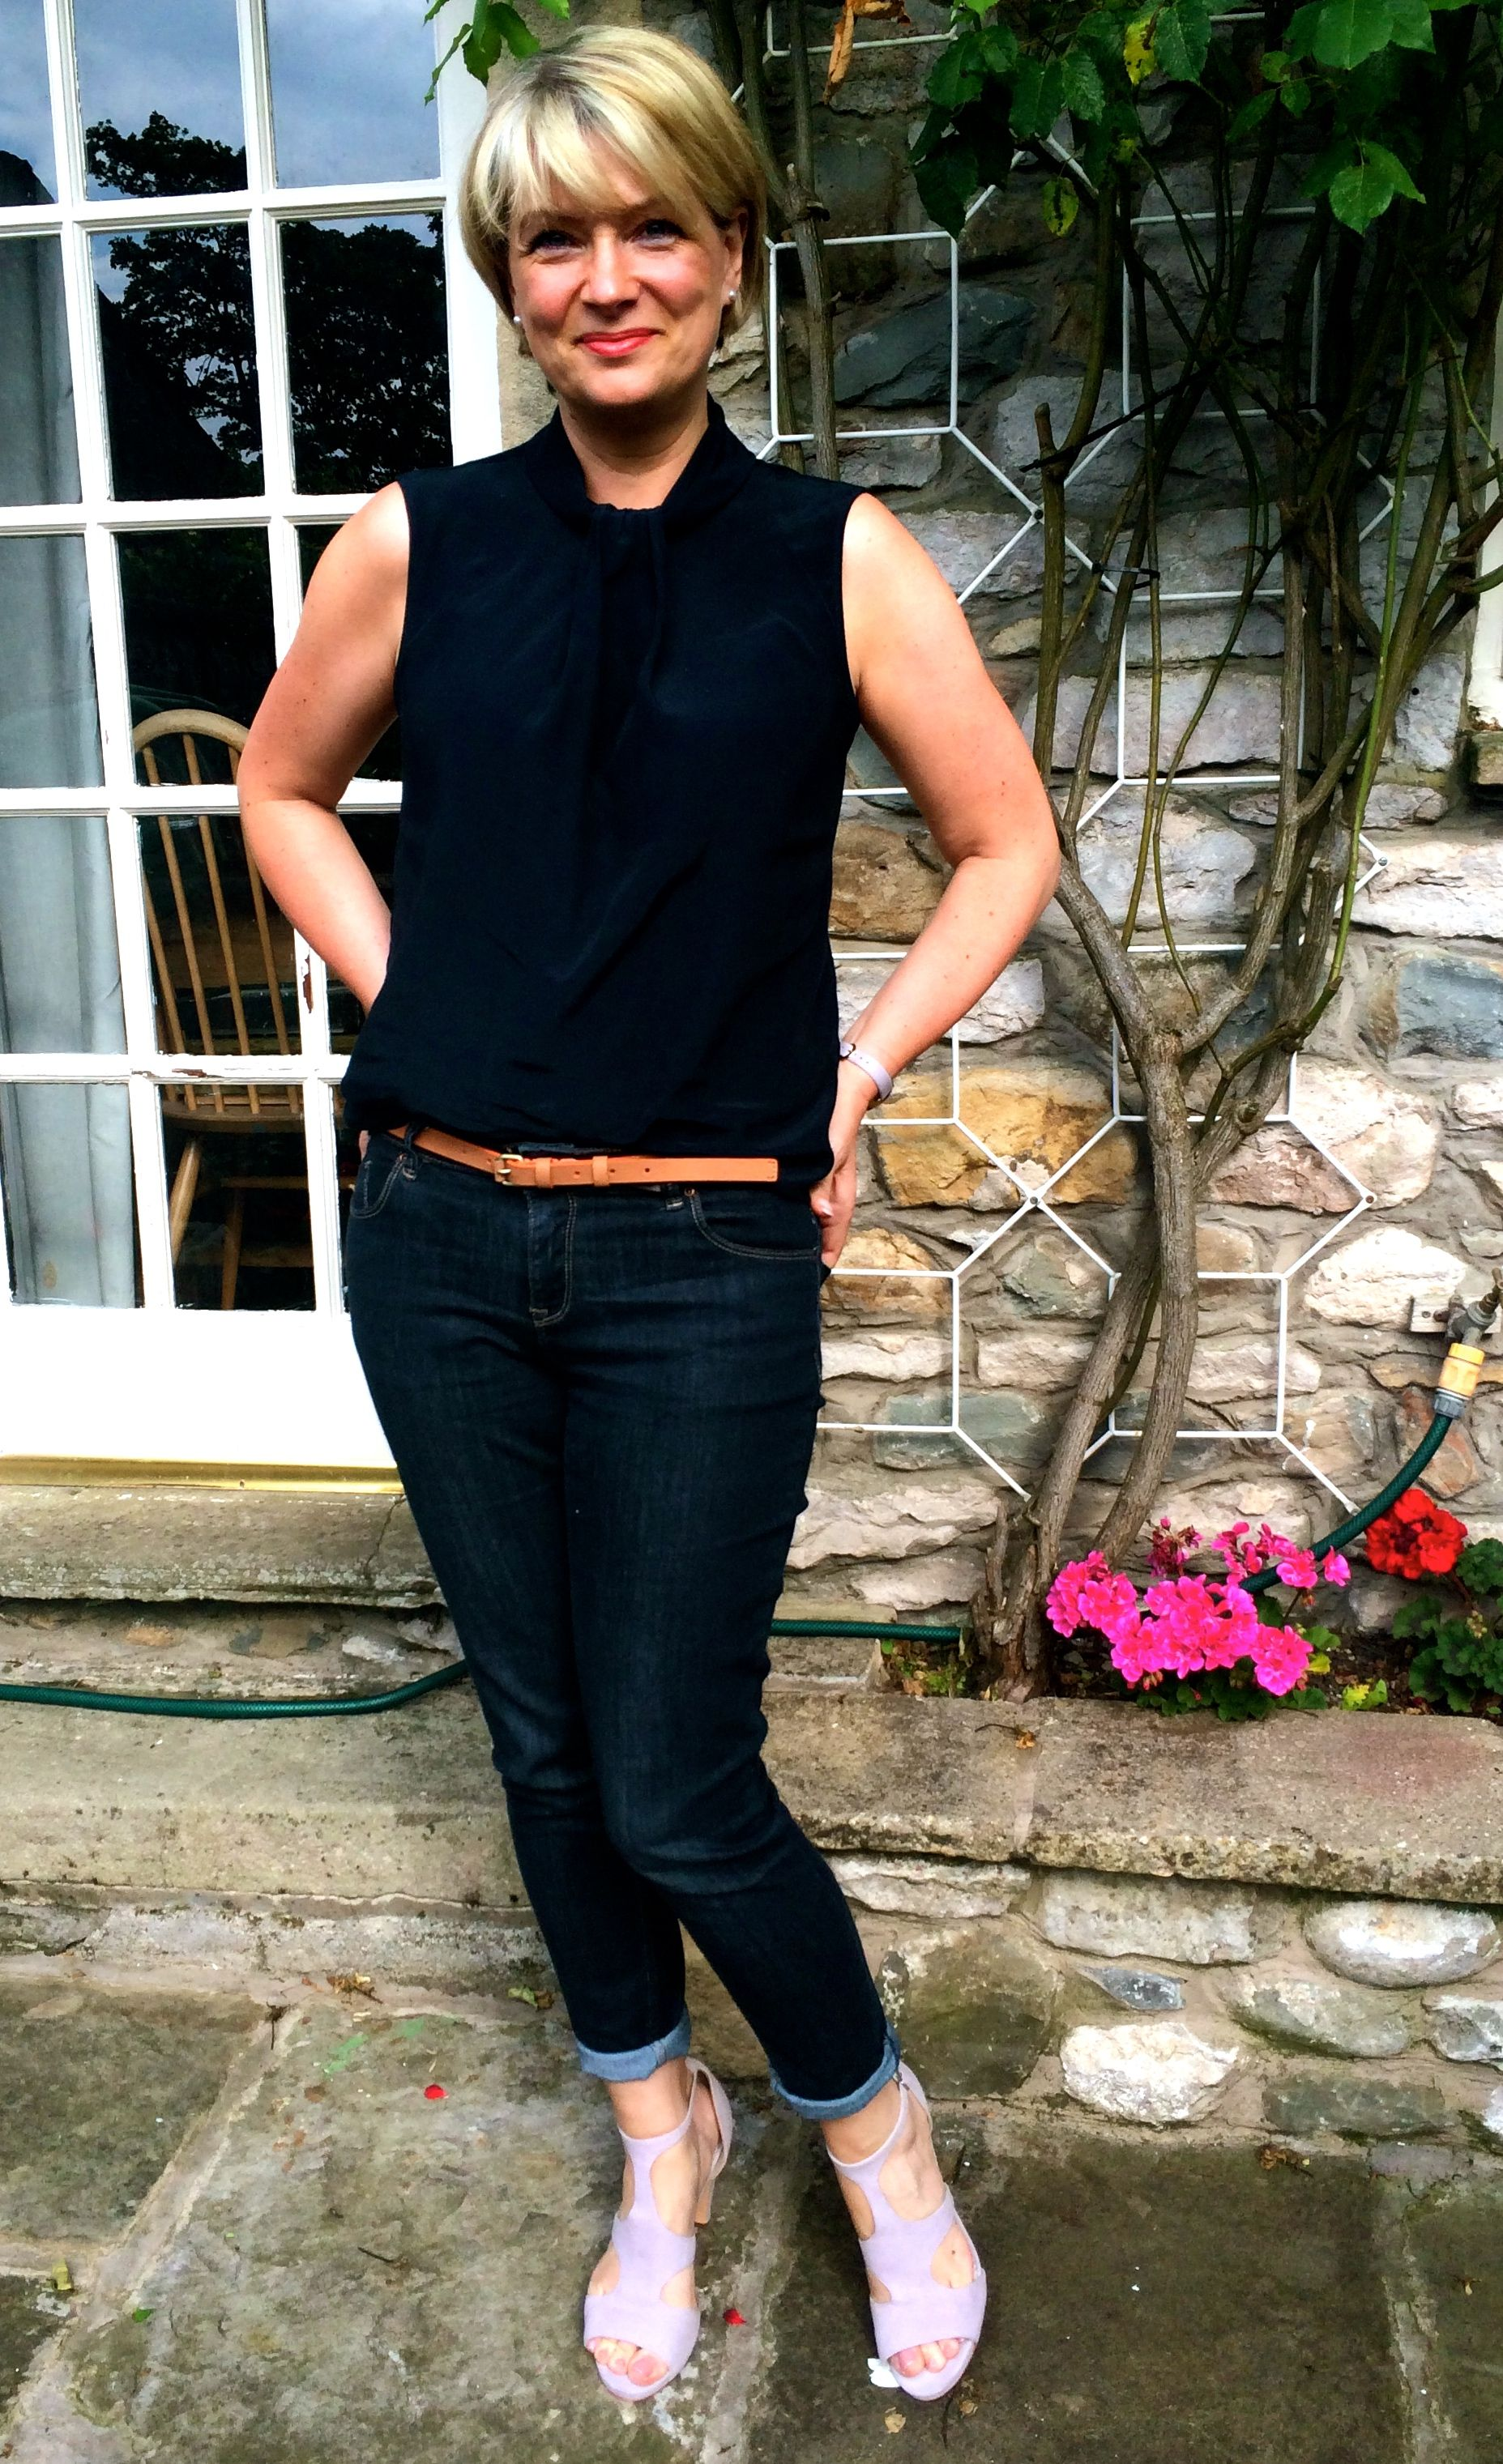 Trends For Spring Summer Clothes For Real Women Over 40: Summer Work Outfits For Women Over 40